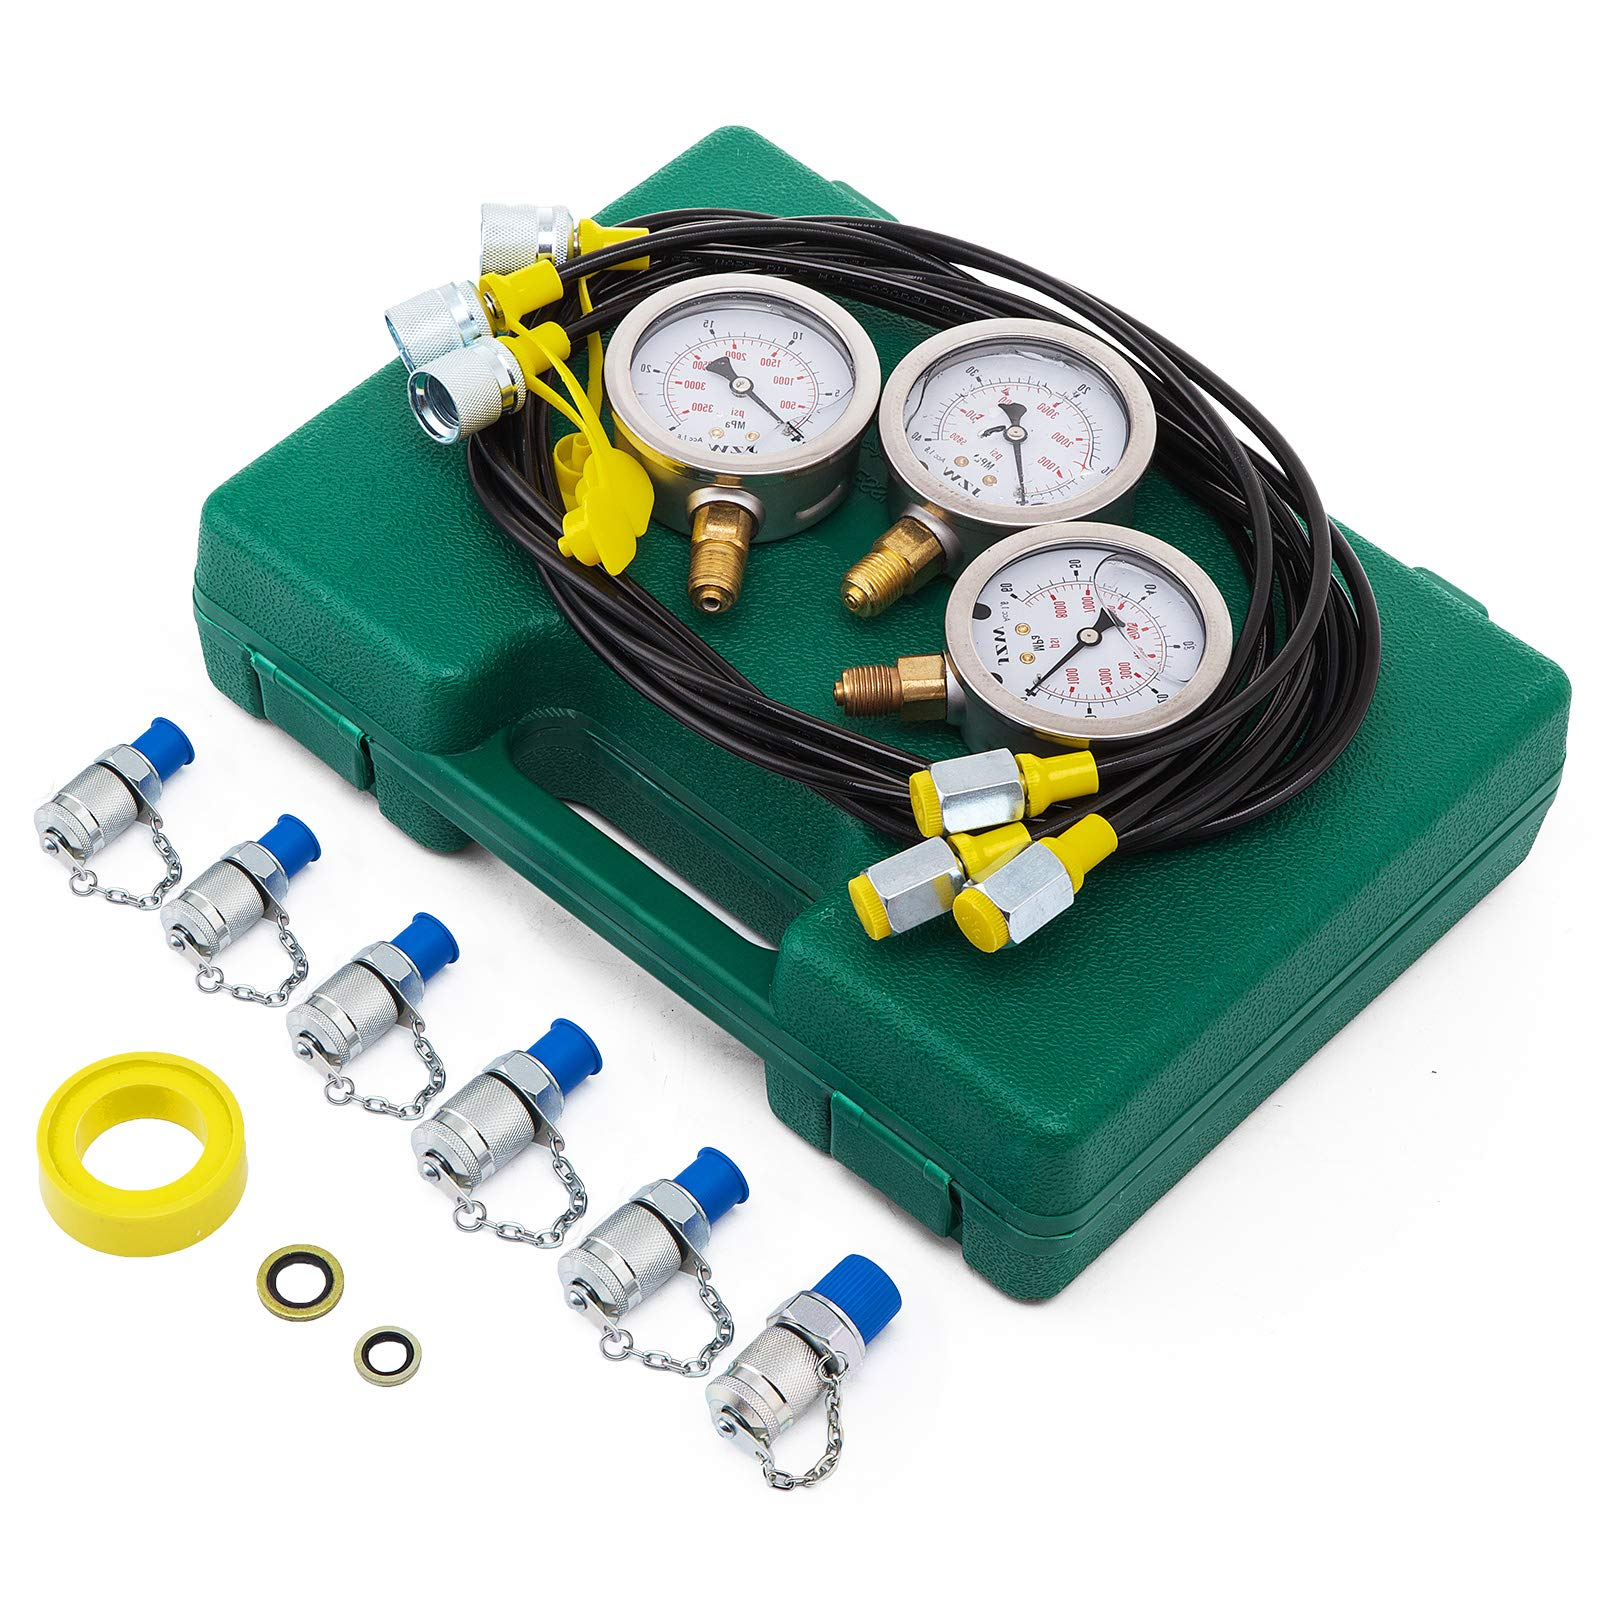 VEVOR Hydraulic Pressure Gauge Test Kit with 6 Couplings Excavator Hydraulic Pressure Test Kit 25/40/60Mpa Hydraulic Pressure Test Coupling Kit for Excavator Construction Machinery 9000 PSI